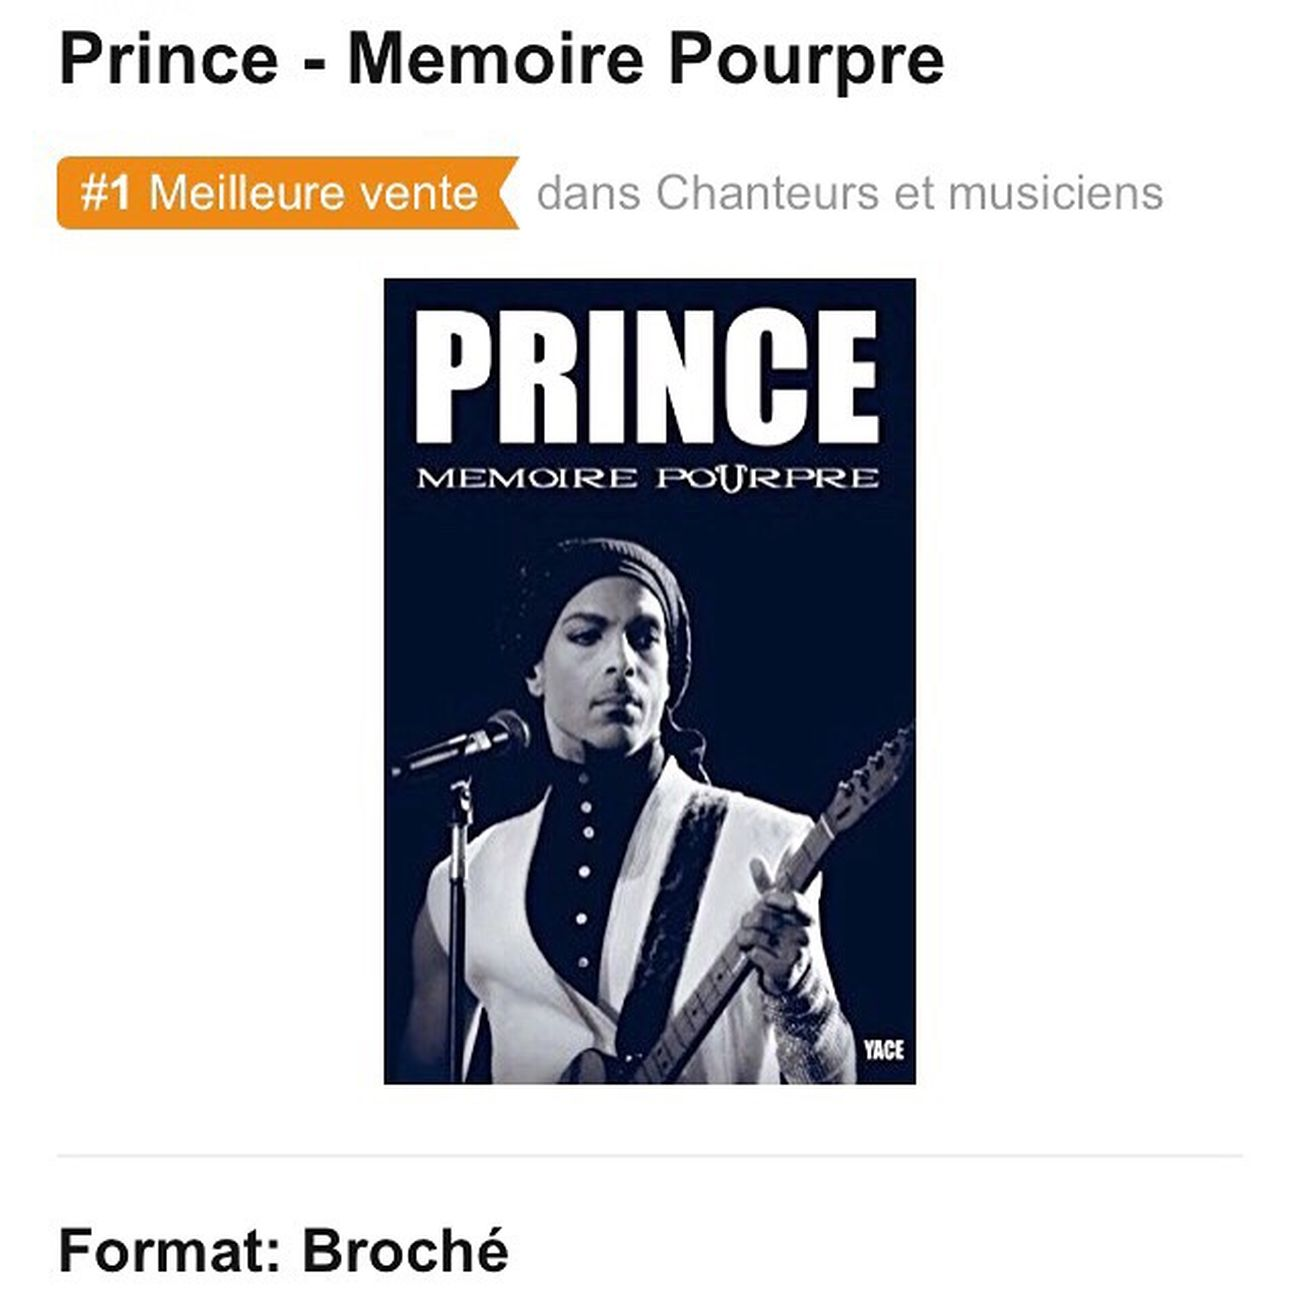 "I supplied the photos for this new Prince book - all self financed fan book by Yace. Avaible now in french at Amazon.fr - an english version will be ready in April 2017. Purple memories….Of those we keep more preciously than ever since Prince's tragic death on April 21st 2016. A true fan narrative.This is Yace's account, from age 14 and the original shock of Purple Rain in 1984 to the discovery of the hundreds of amazing songs produced by the Master of Minneapolis and the invaluable privilege of seeing the Artist 45 times on stage between 1988 and 2014. The story of these special moments, either personal or shared with others, confronting and experiencing Prince's work and creative power. This book evokes the immersion of the author in purple music which seems to become one with its creator, as an invisible bridge from Minneapolis to our distant teenage bedrooms, the story of our transcendences as fans, our questionning, or disappointments sometimes too. It recalls the projection of our musical fantasies, with the record sleeve in our hands attempting to decrypt Prince's DNA in a maelstrom of funky and random synaptic transmissions. Mémoire Pourpre is neither a biography, nor the book of an exegete or a Prince history one, but rather a passionate and musical account to witness the gift, the grace and the genius Prince shared with us his entire life. Featuring Jill Jones and Morris Hayes , Prince's long time collaborators and top rank musicians. This book also presents exclusive photos of Prince by Sten Knudoft, a Danish photographer and fan from the very beginning . Text from Amazon.fr : ""Fans / writers are not to be outdone with - Purple Memory, a narrative available on Amazon on January 7 written by Yace with the participation of Jill Jones, Morris Hayes and photographer Sten Knudtoft."" https://www.amazon.fr/Prince-Memoire-Pourpre-Yace/dp/1540498956/ref=sr_1_1?s=books&ie=UTF8&qid=148336993 Prince  Blackandwhite Blackandwhite Photography Concert Musician Music Arts Culture And Entertainment Npg Denmark France Concert Photography Funky Stage - Performance Space Books"